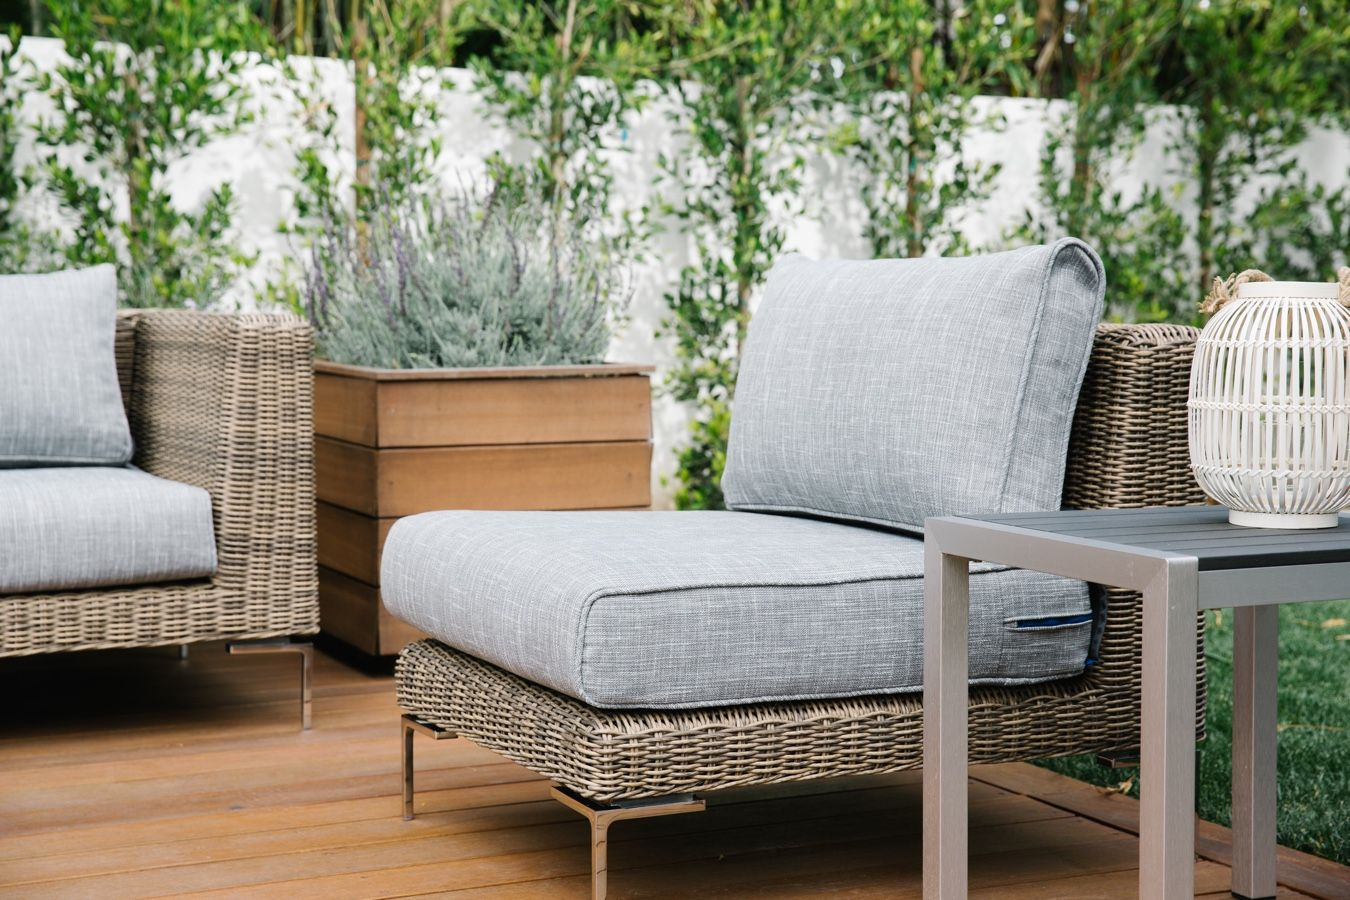 outdoor wicker furniture with grey cushions